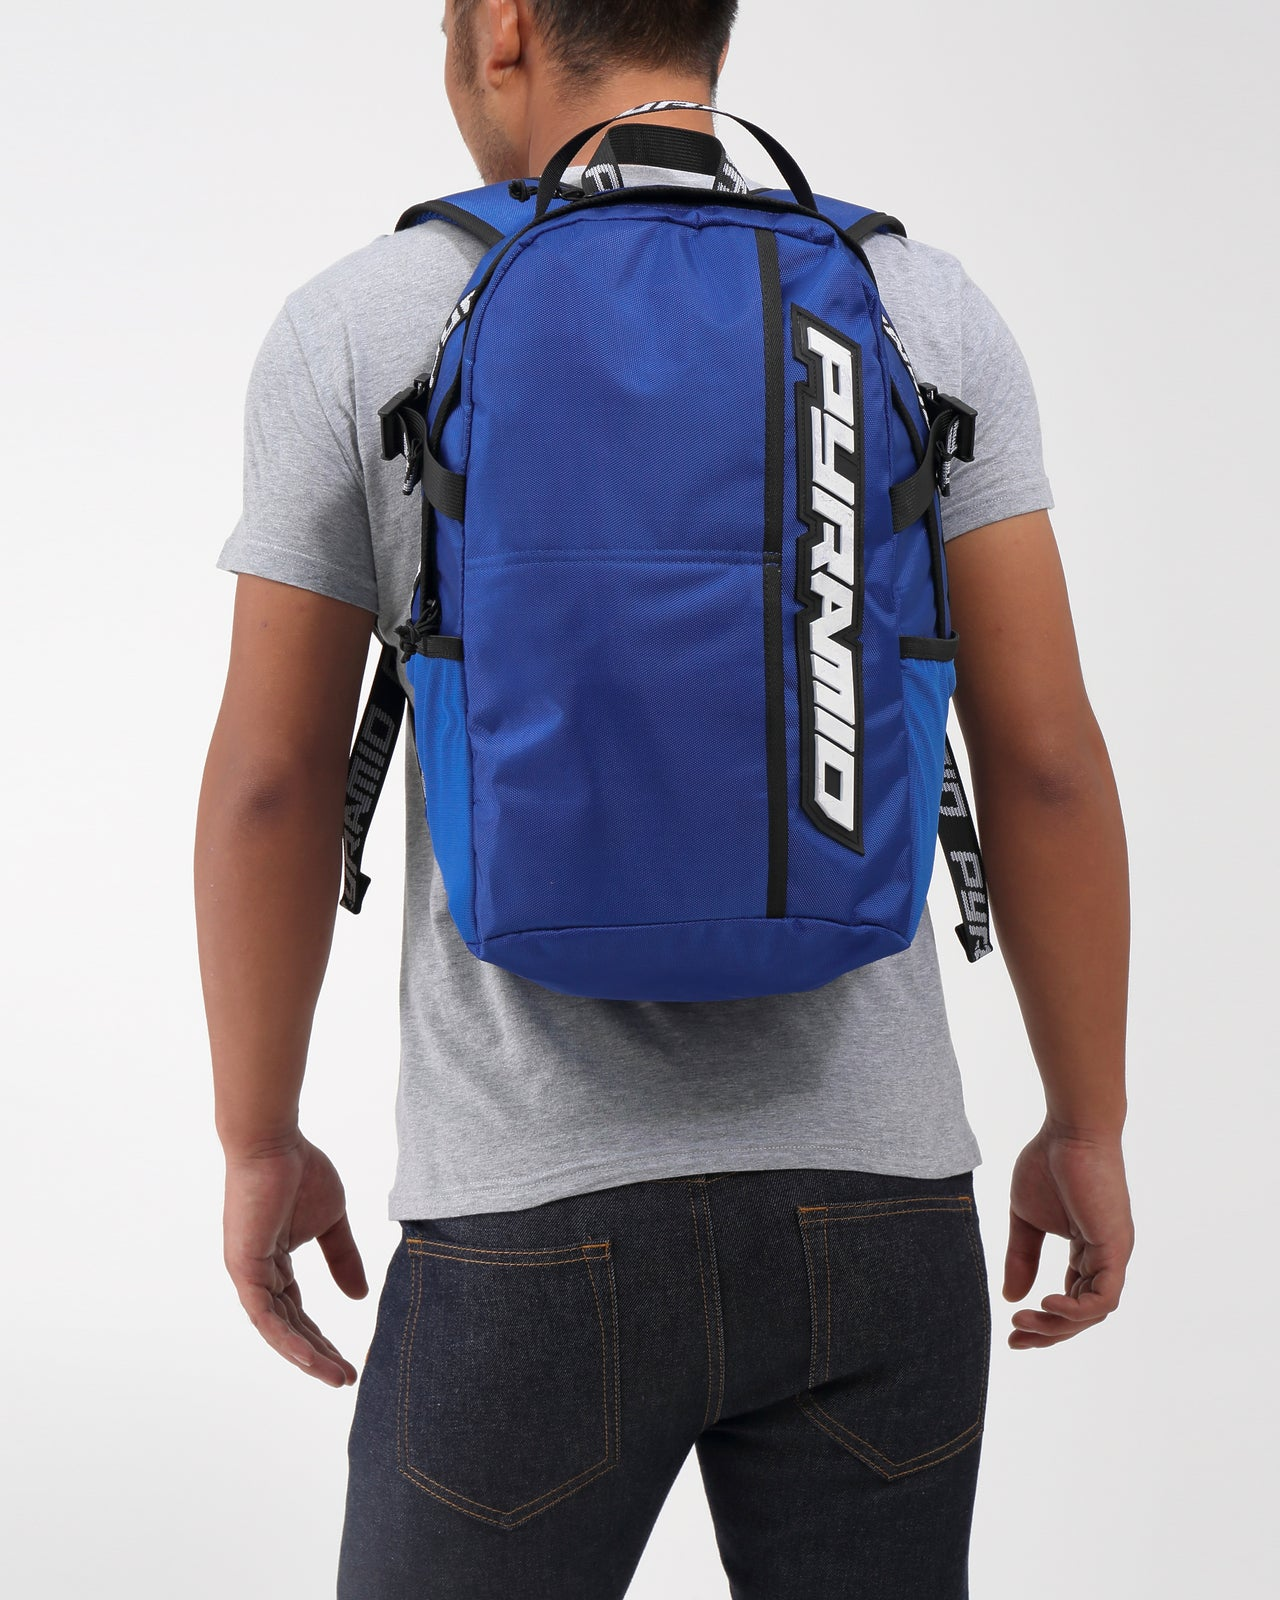 PYRAMID BACKPACK - Color: Blue